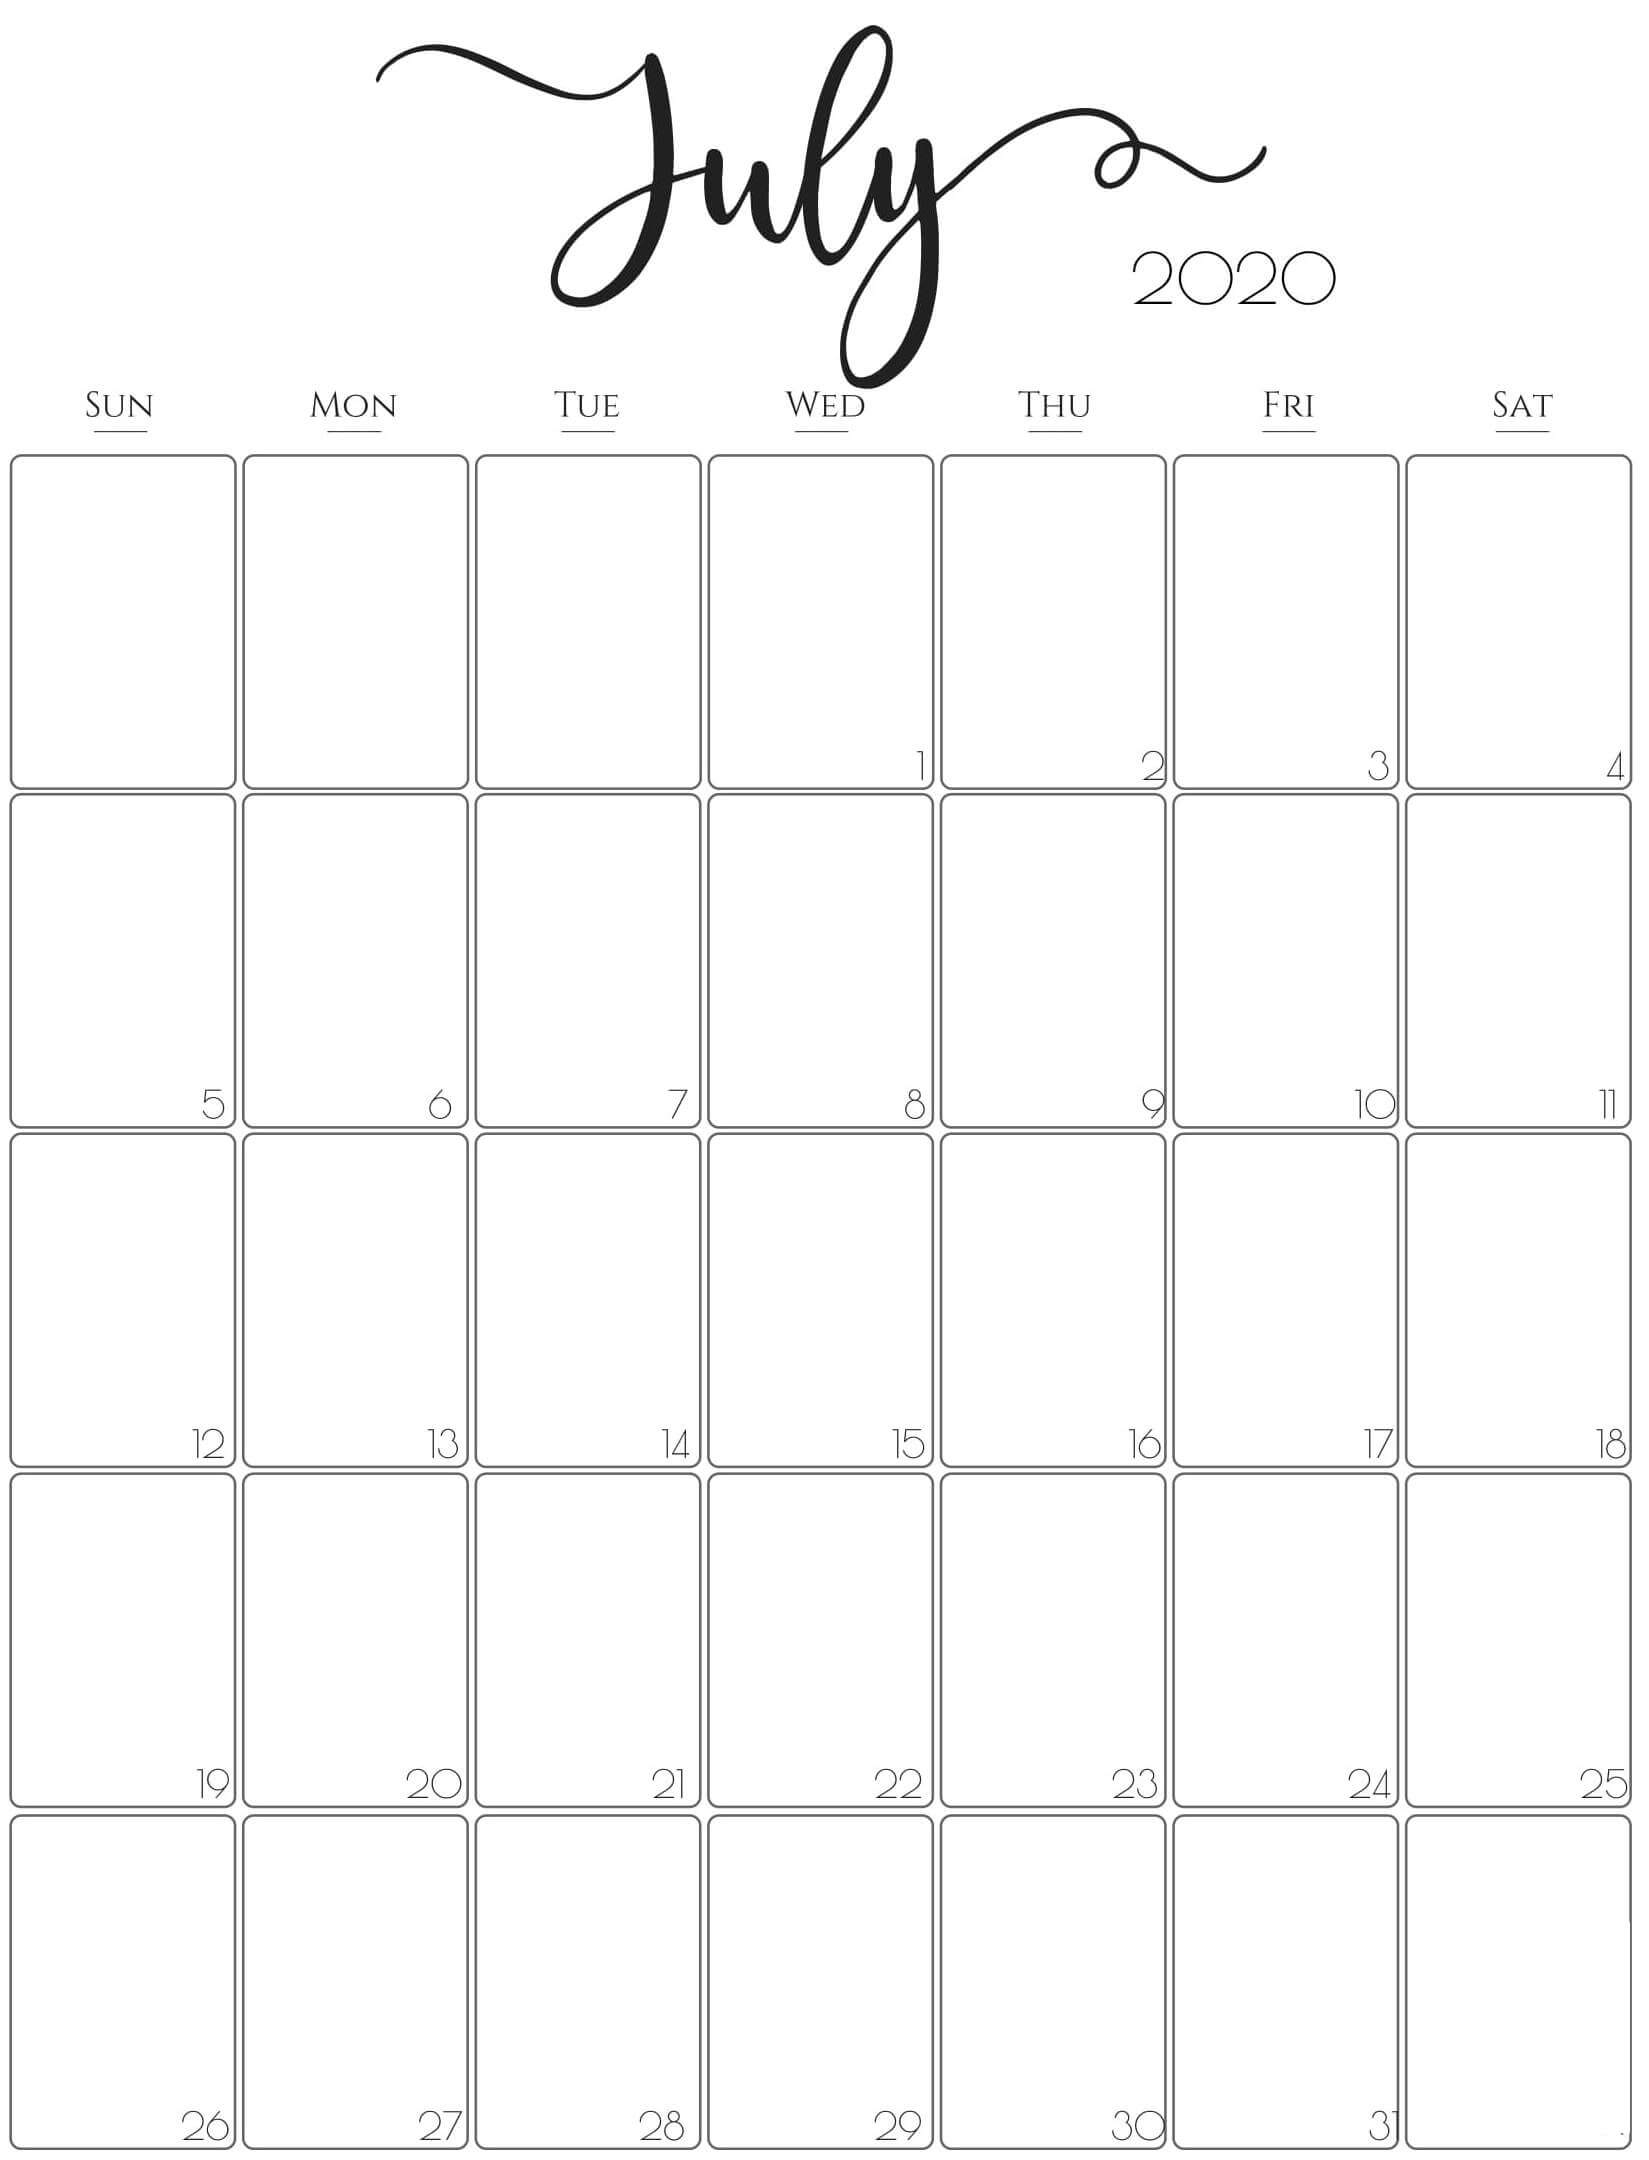 Simple July 2020 Calendar Word With Holidays - One